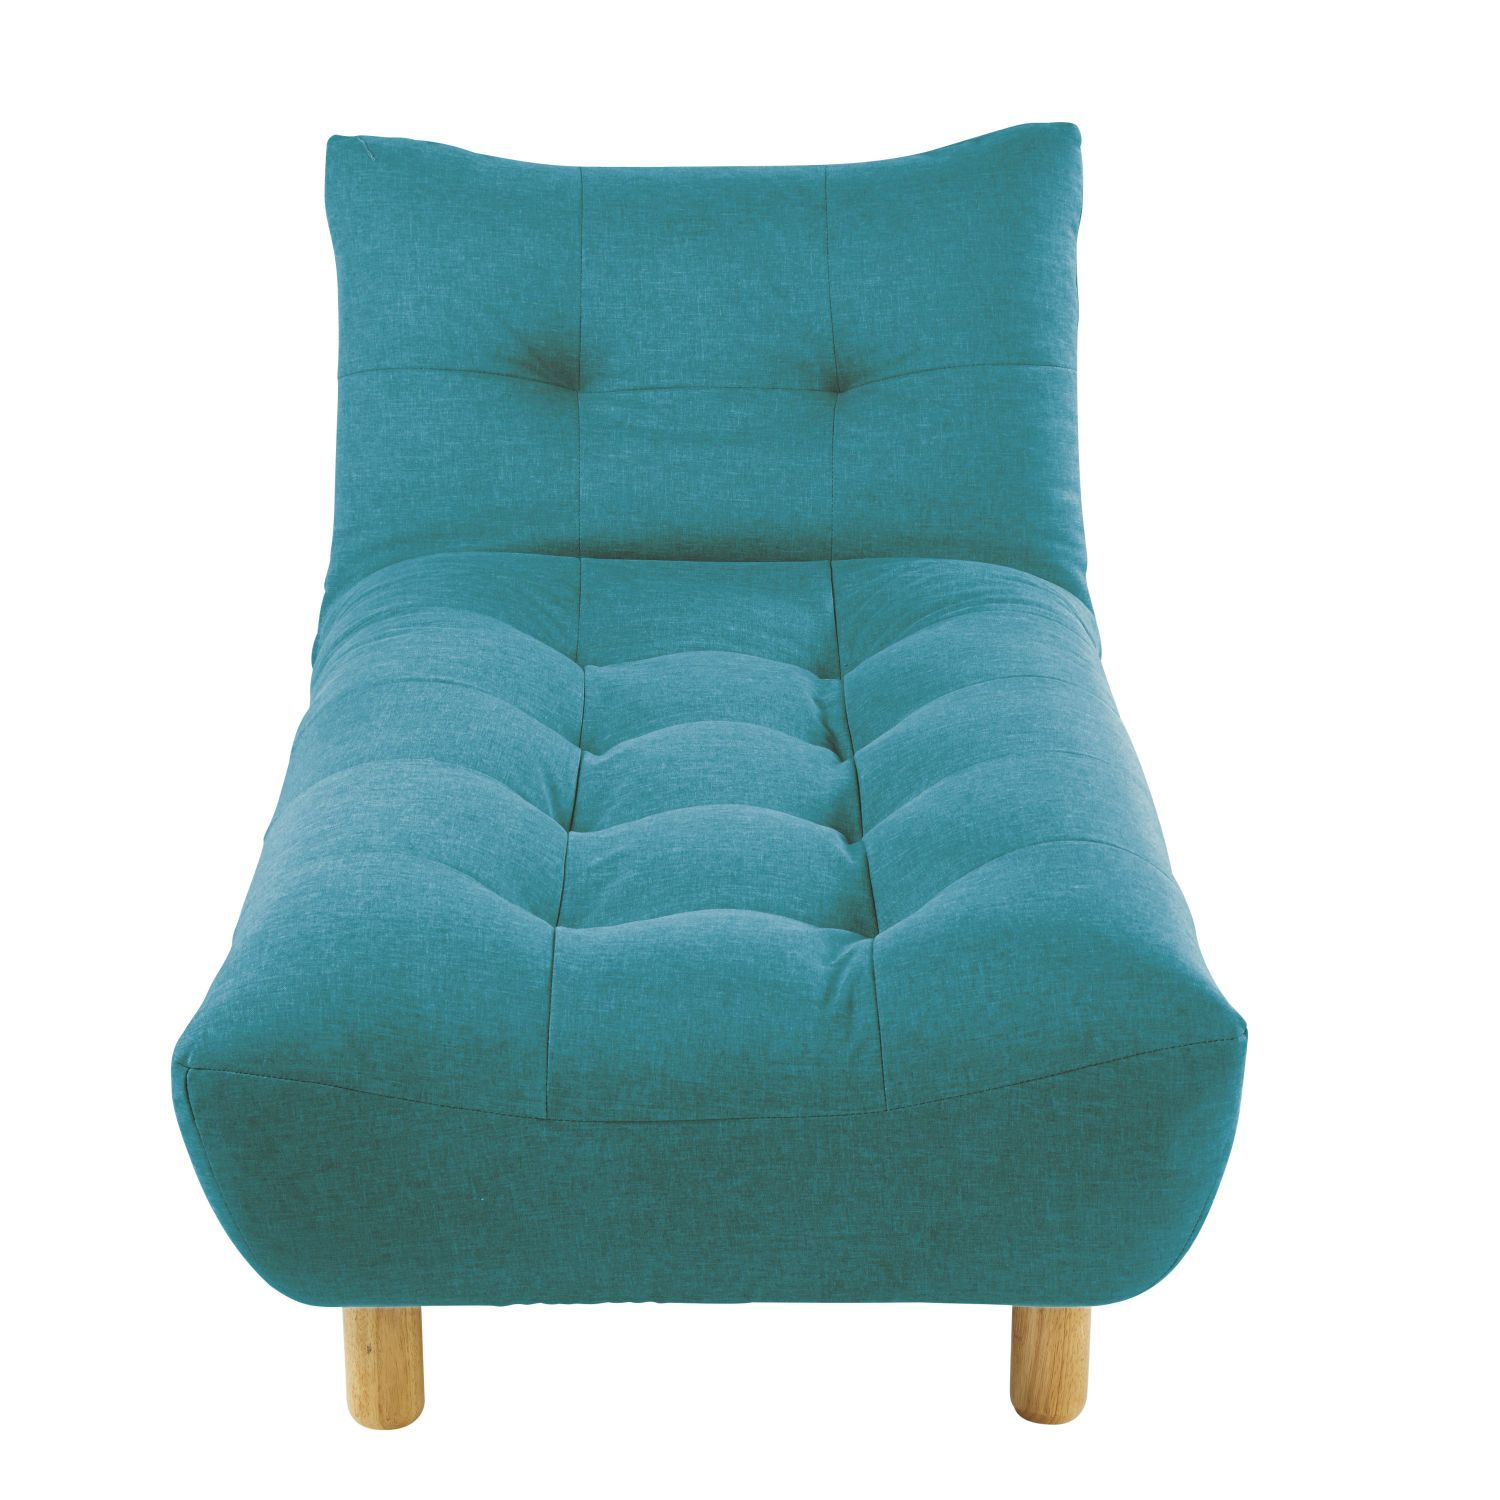 Turquoise Convertible Chaise Longue Home In 2019 Chaise